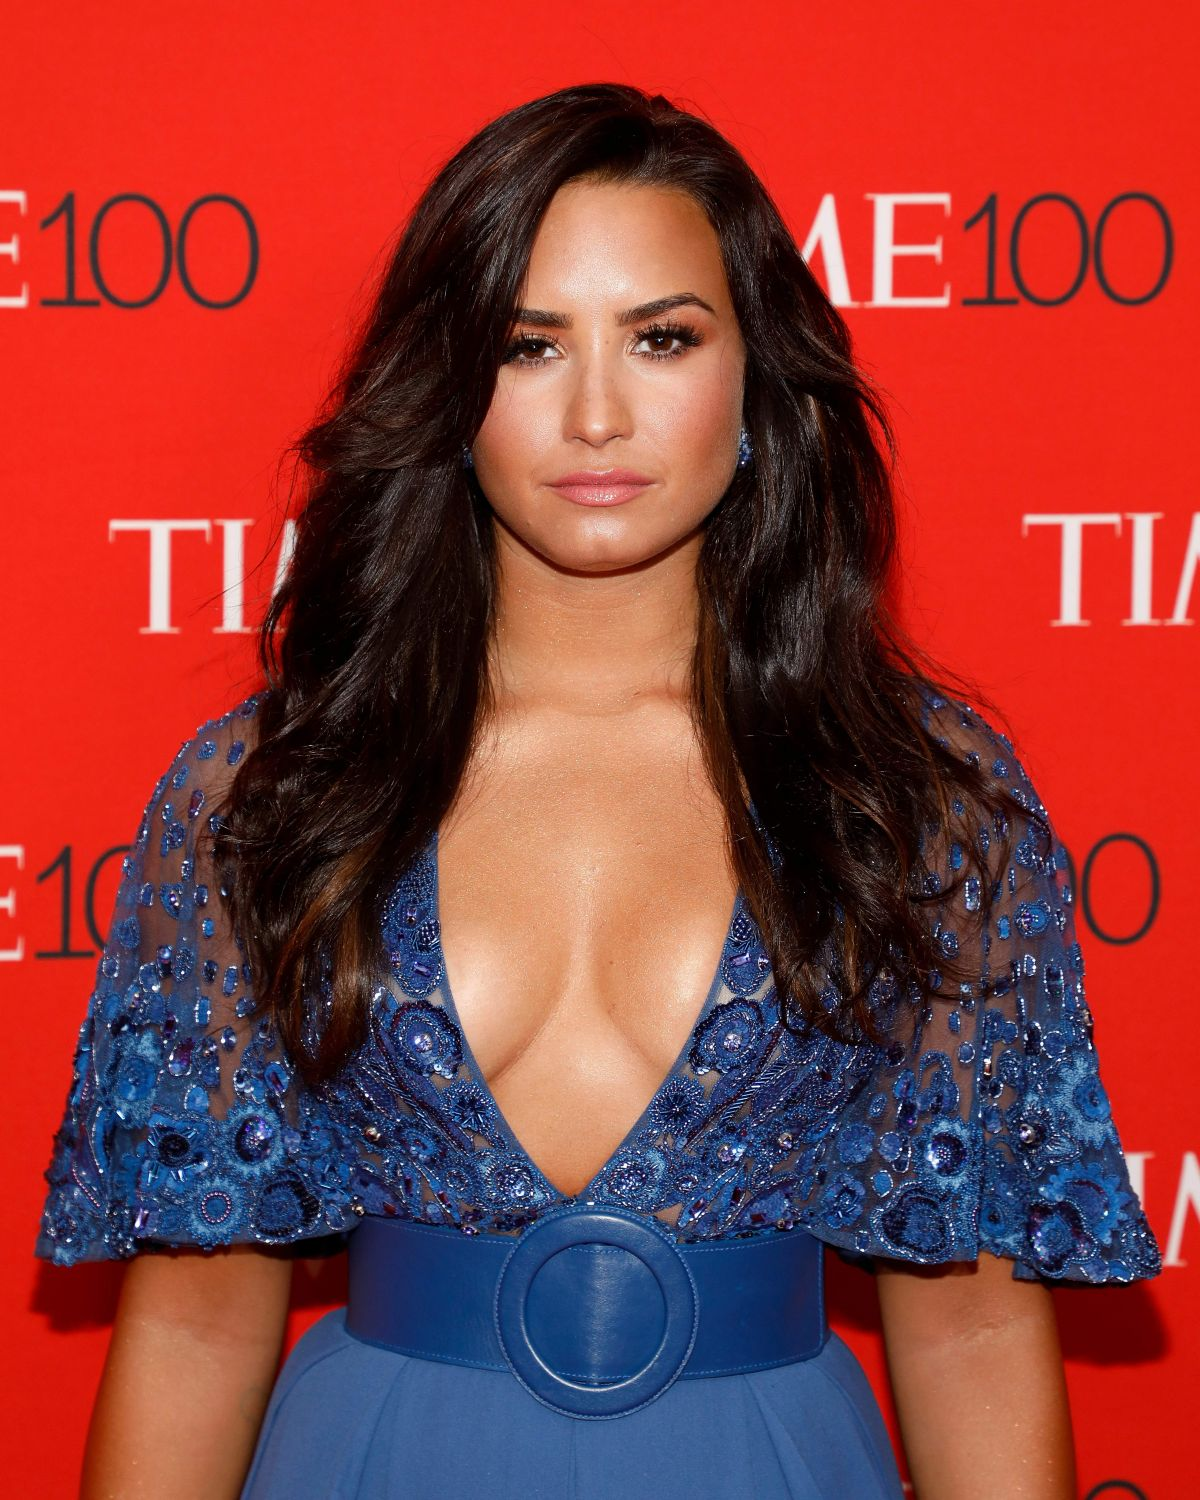 demi lovato - photo #34